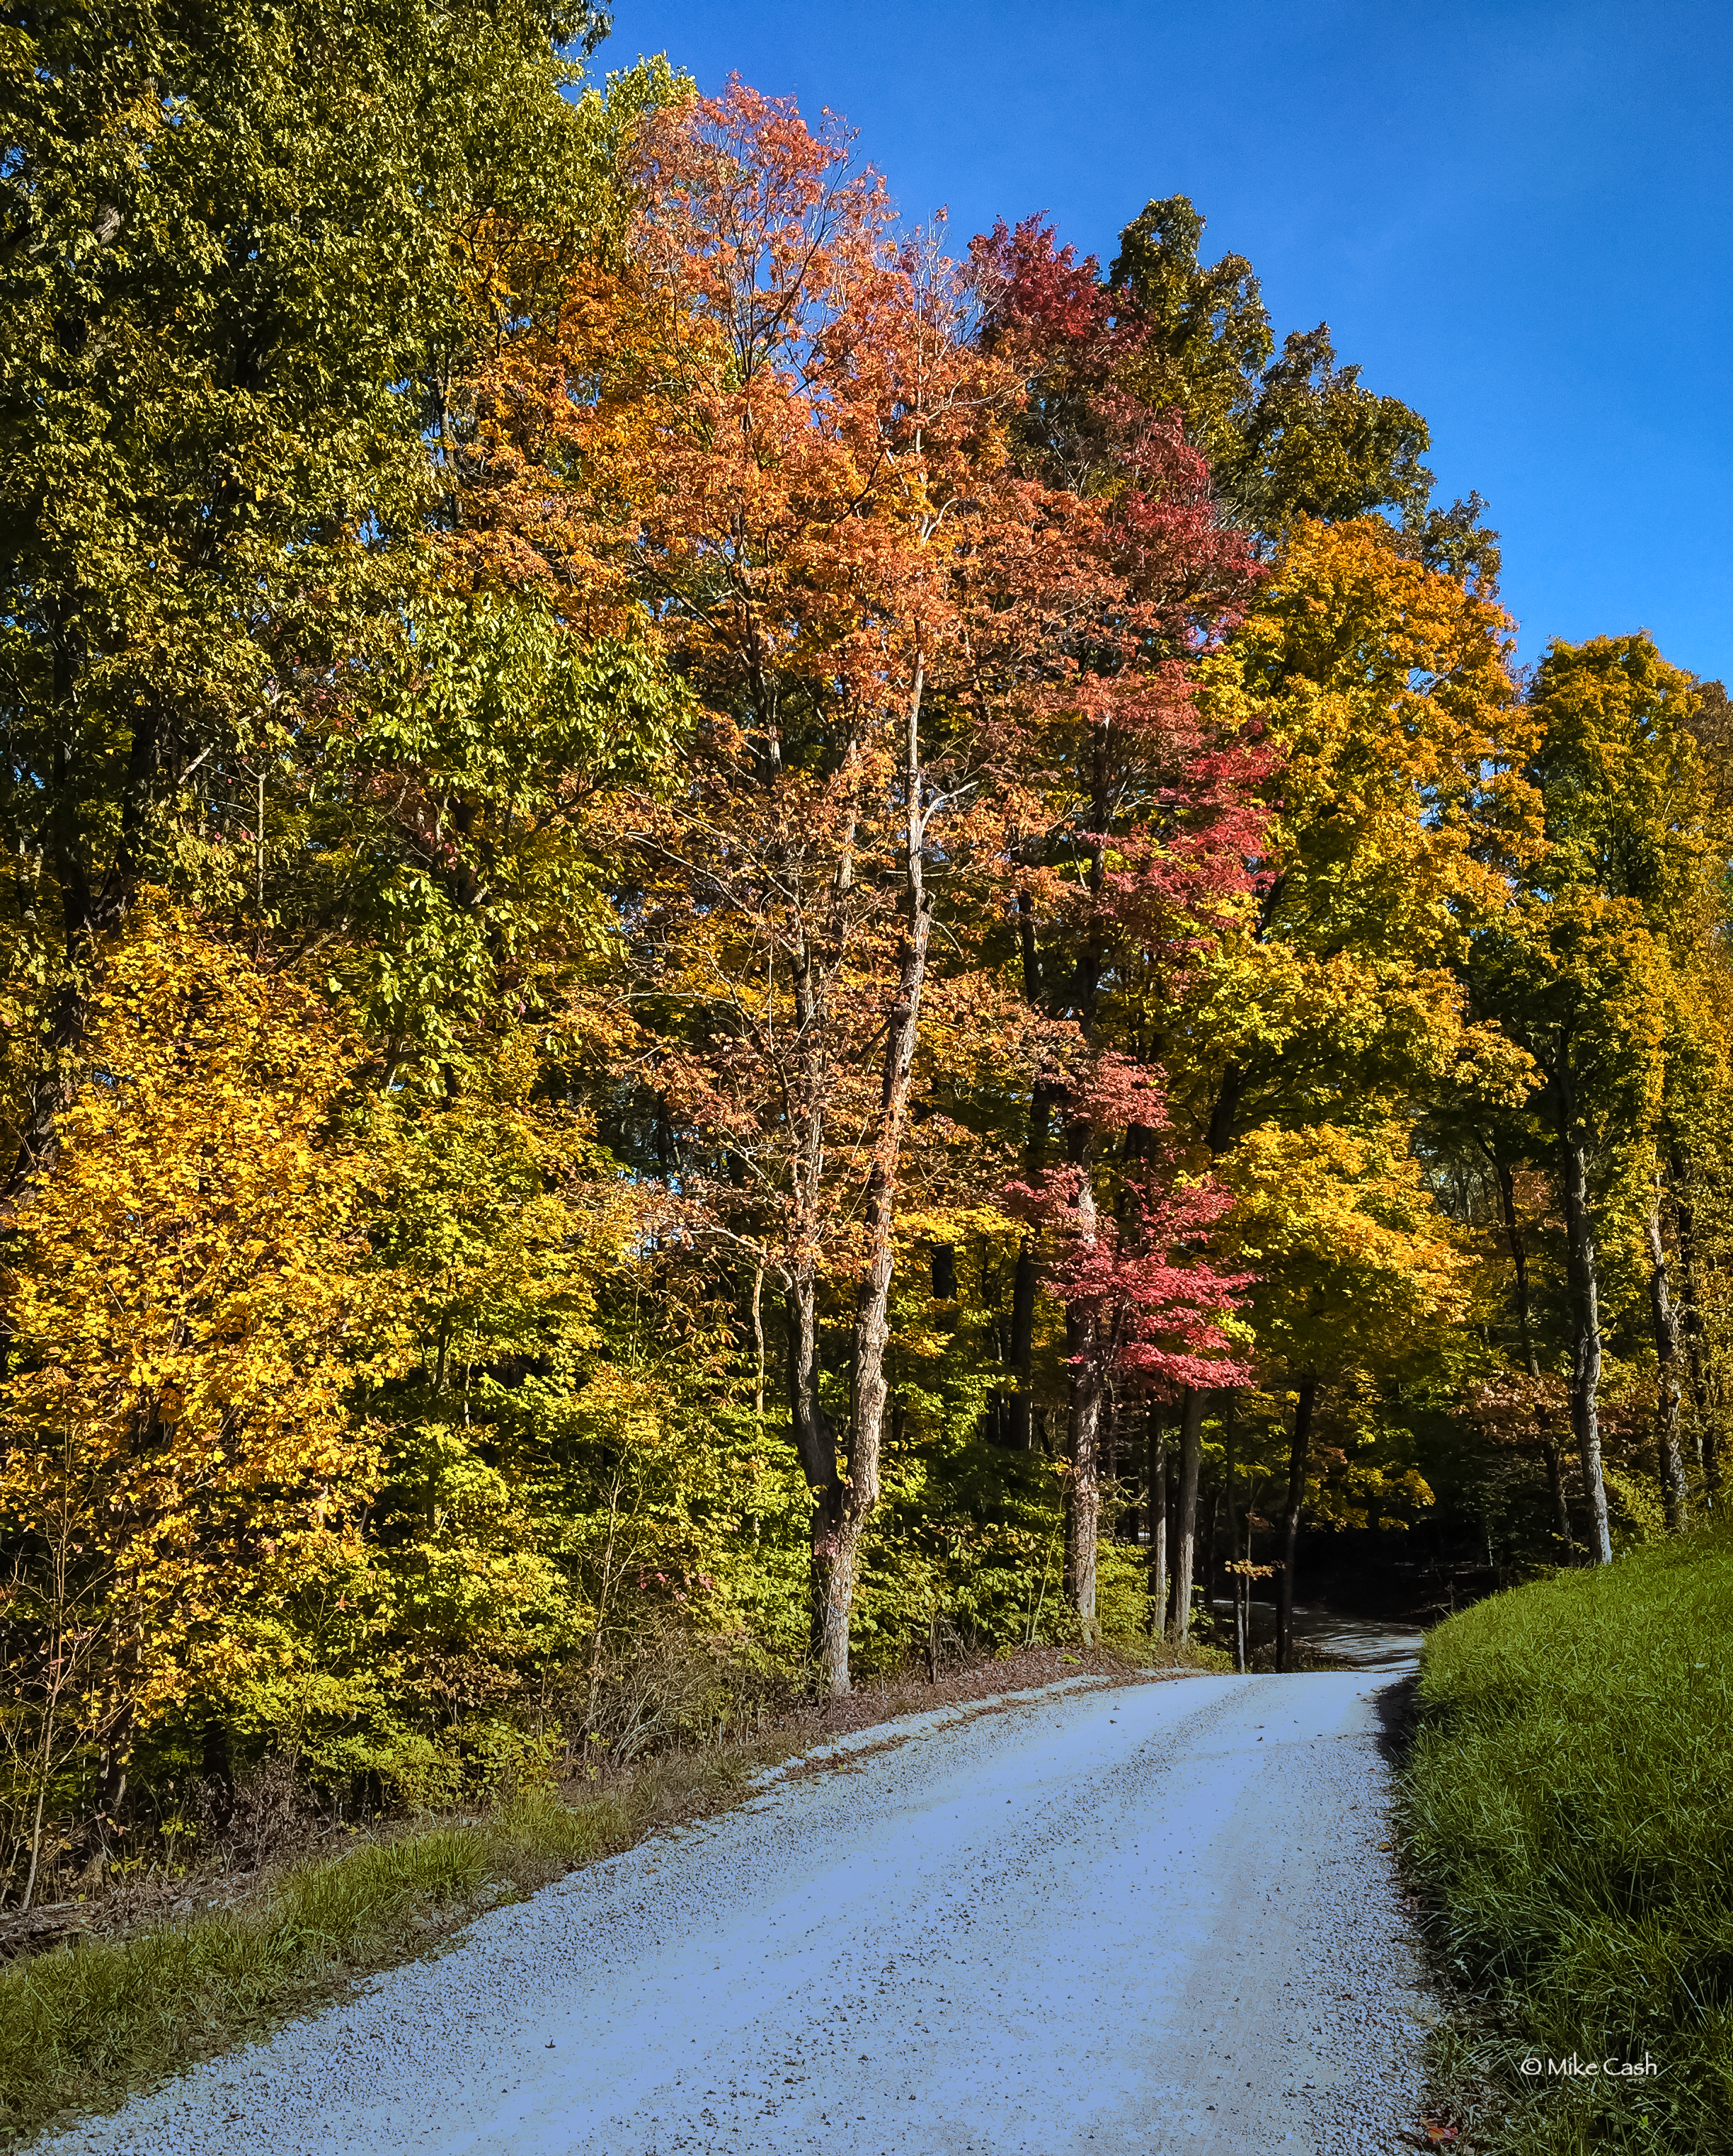 Color along the road in Owen-Putnam State Forest.